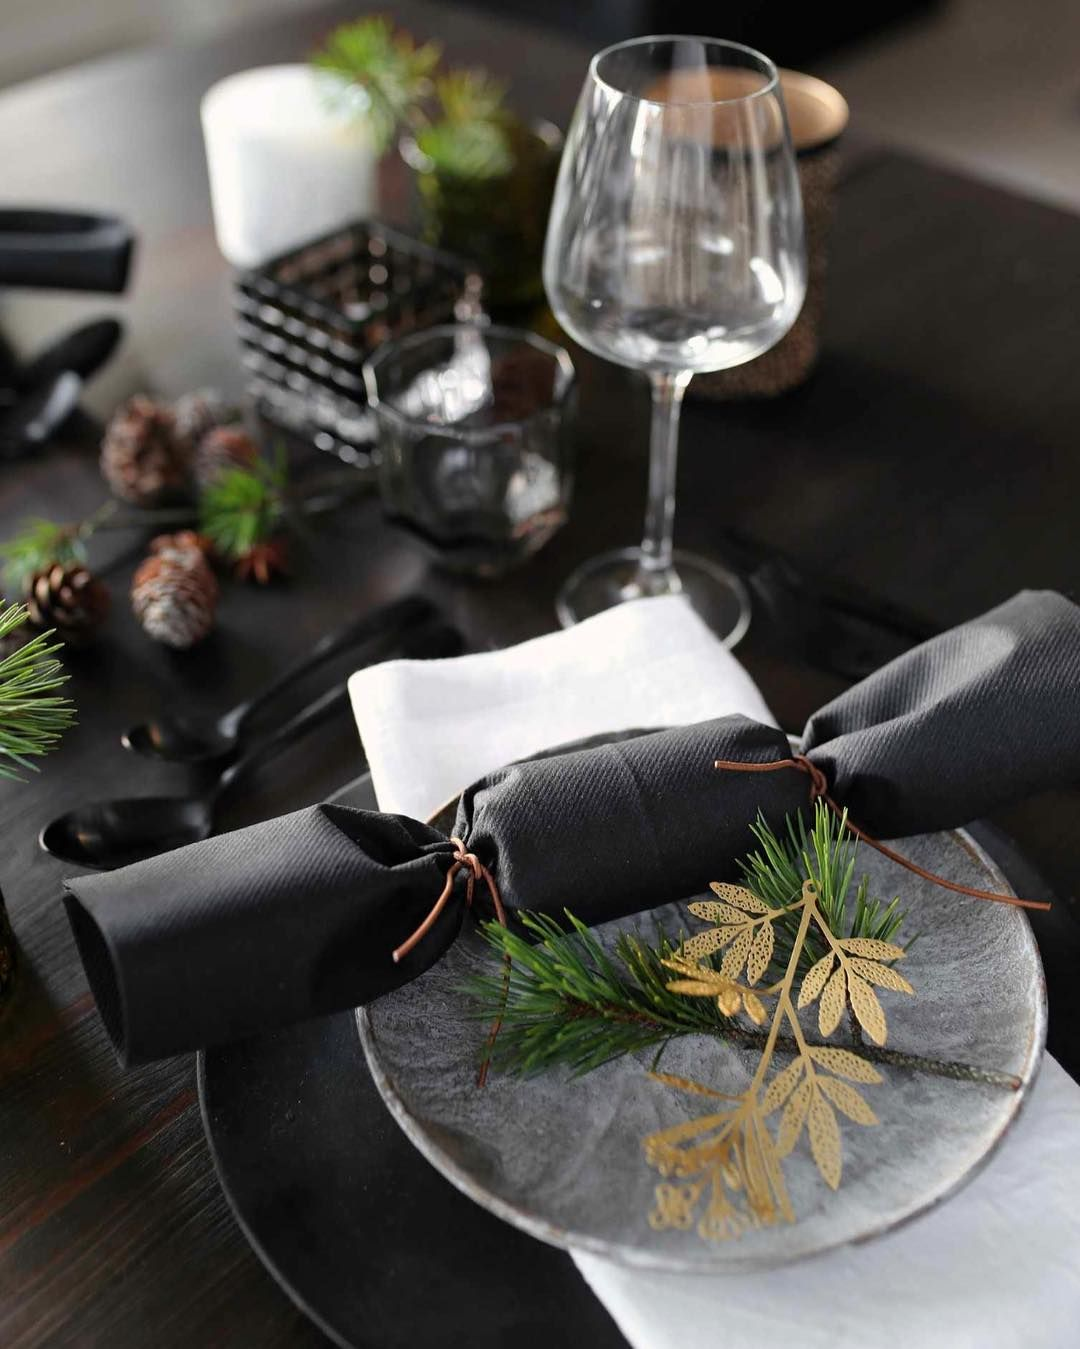 "Therese Knutsen on Instagram: ""Merry Christmas ️ �Ha en strålende jul alle sammen� #godjul #merrychristmas #tablesetting #christmas #borddekking #jul…"""